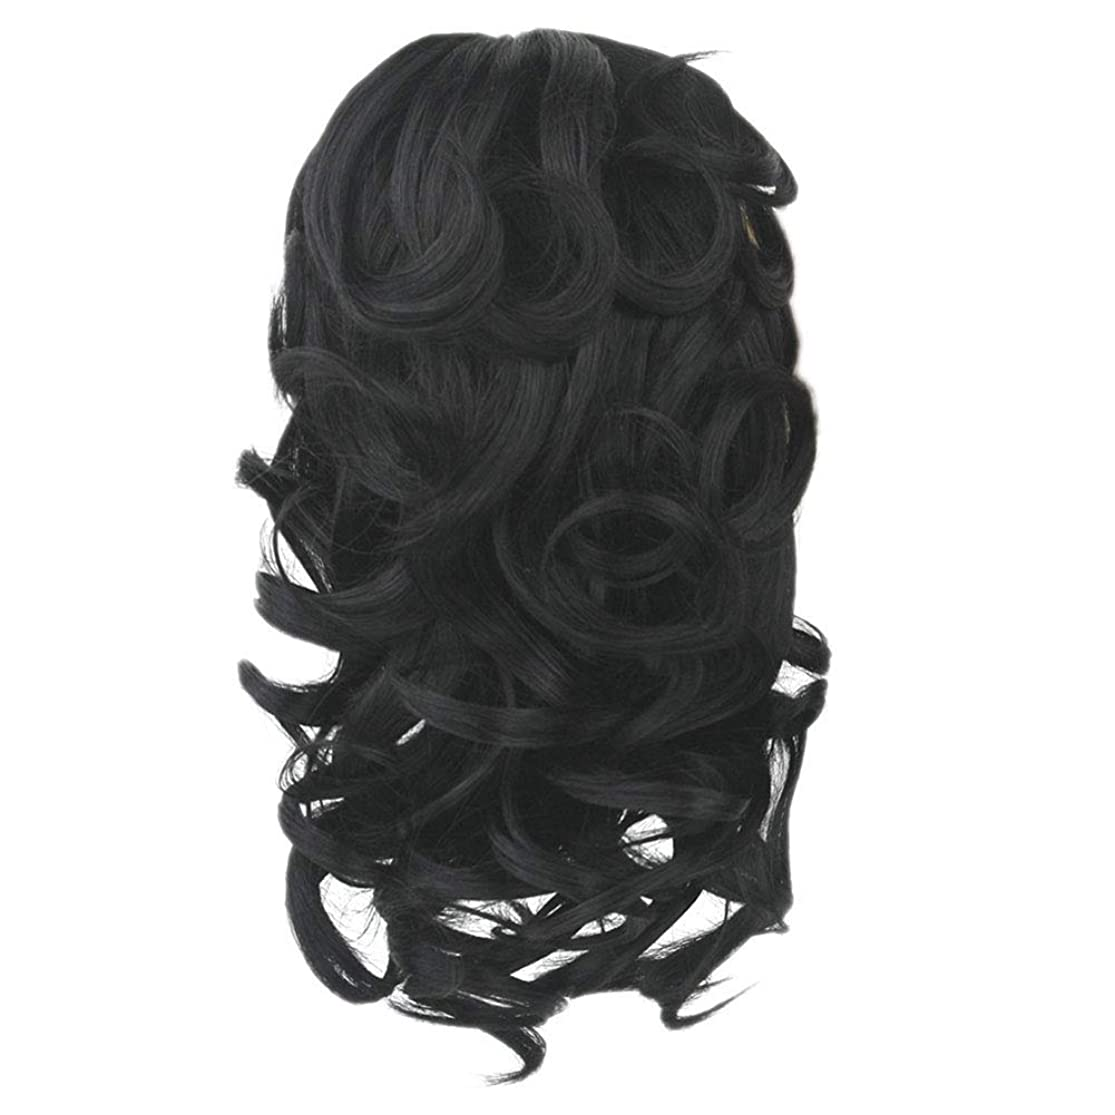 Finerplan Claw Thick Wavy Wig Curly Long Layered Ponytail Wig Clip On Hair Extension uacackga3